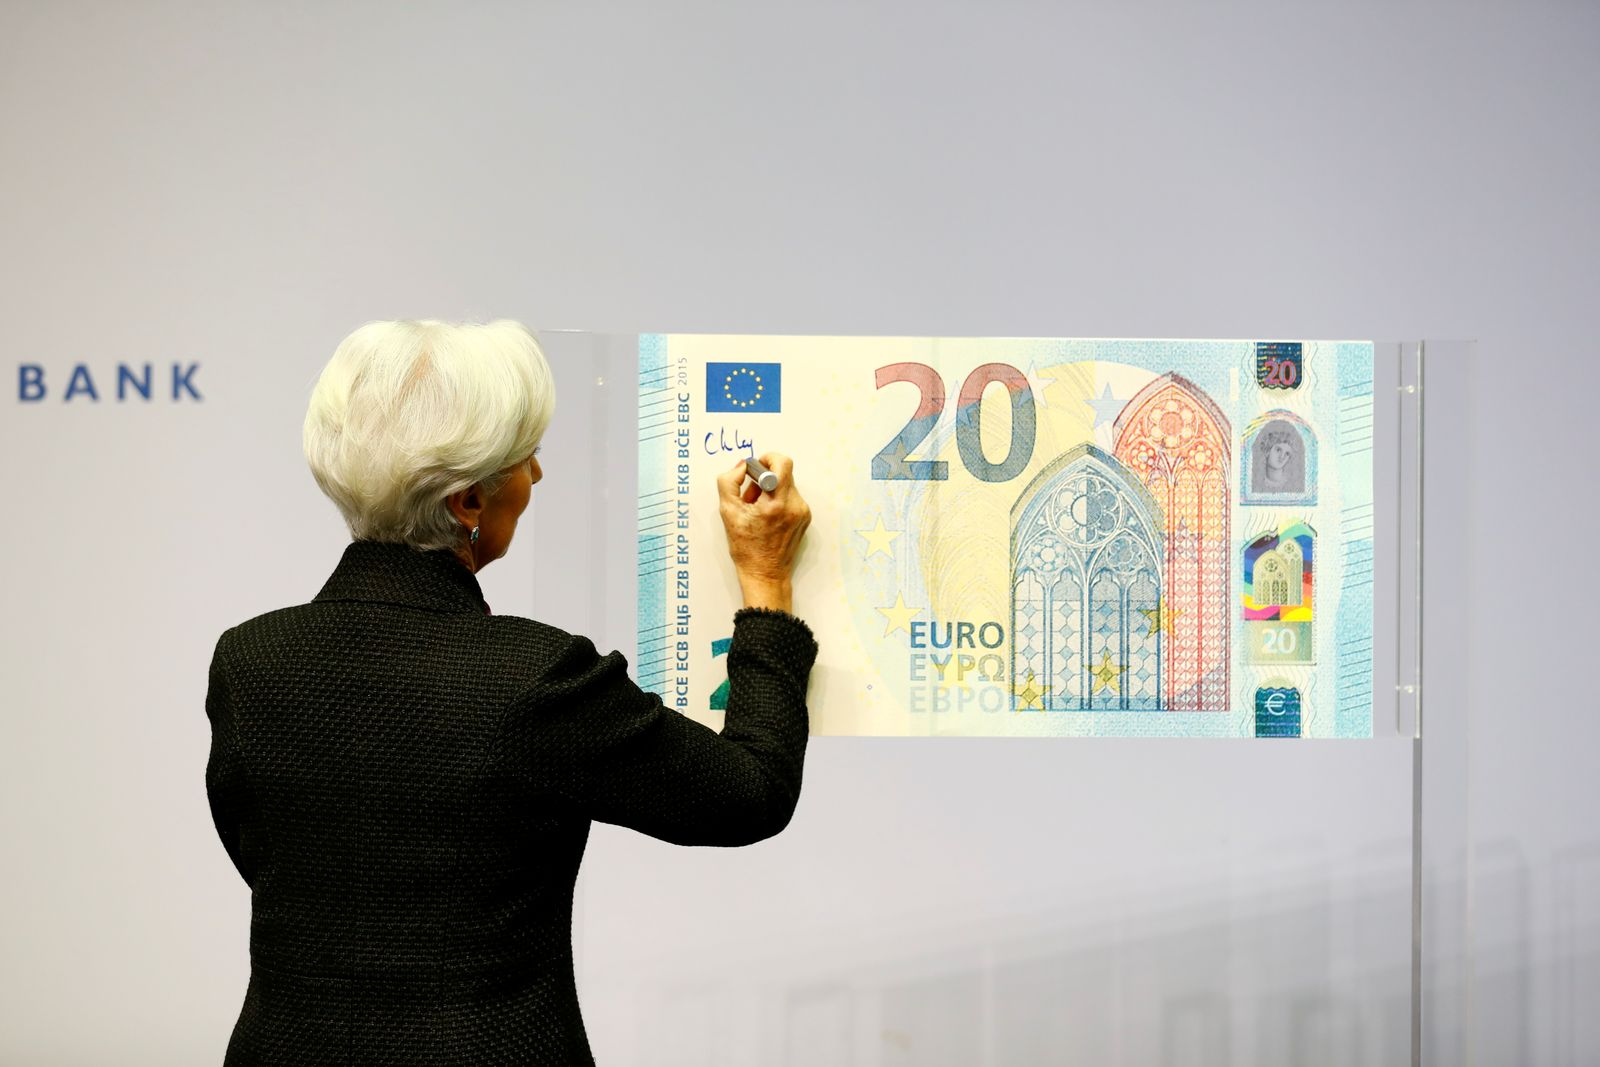 FILE PHOTO: FILE PHOTO: European Central Bank (ECB) President Lagarde gives a signature for newly printed euro banknotes in Frankfurt